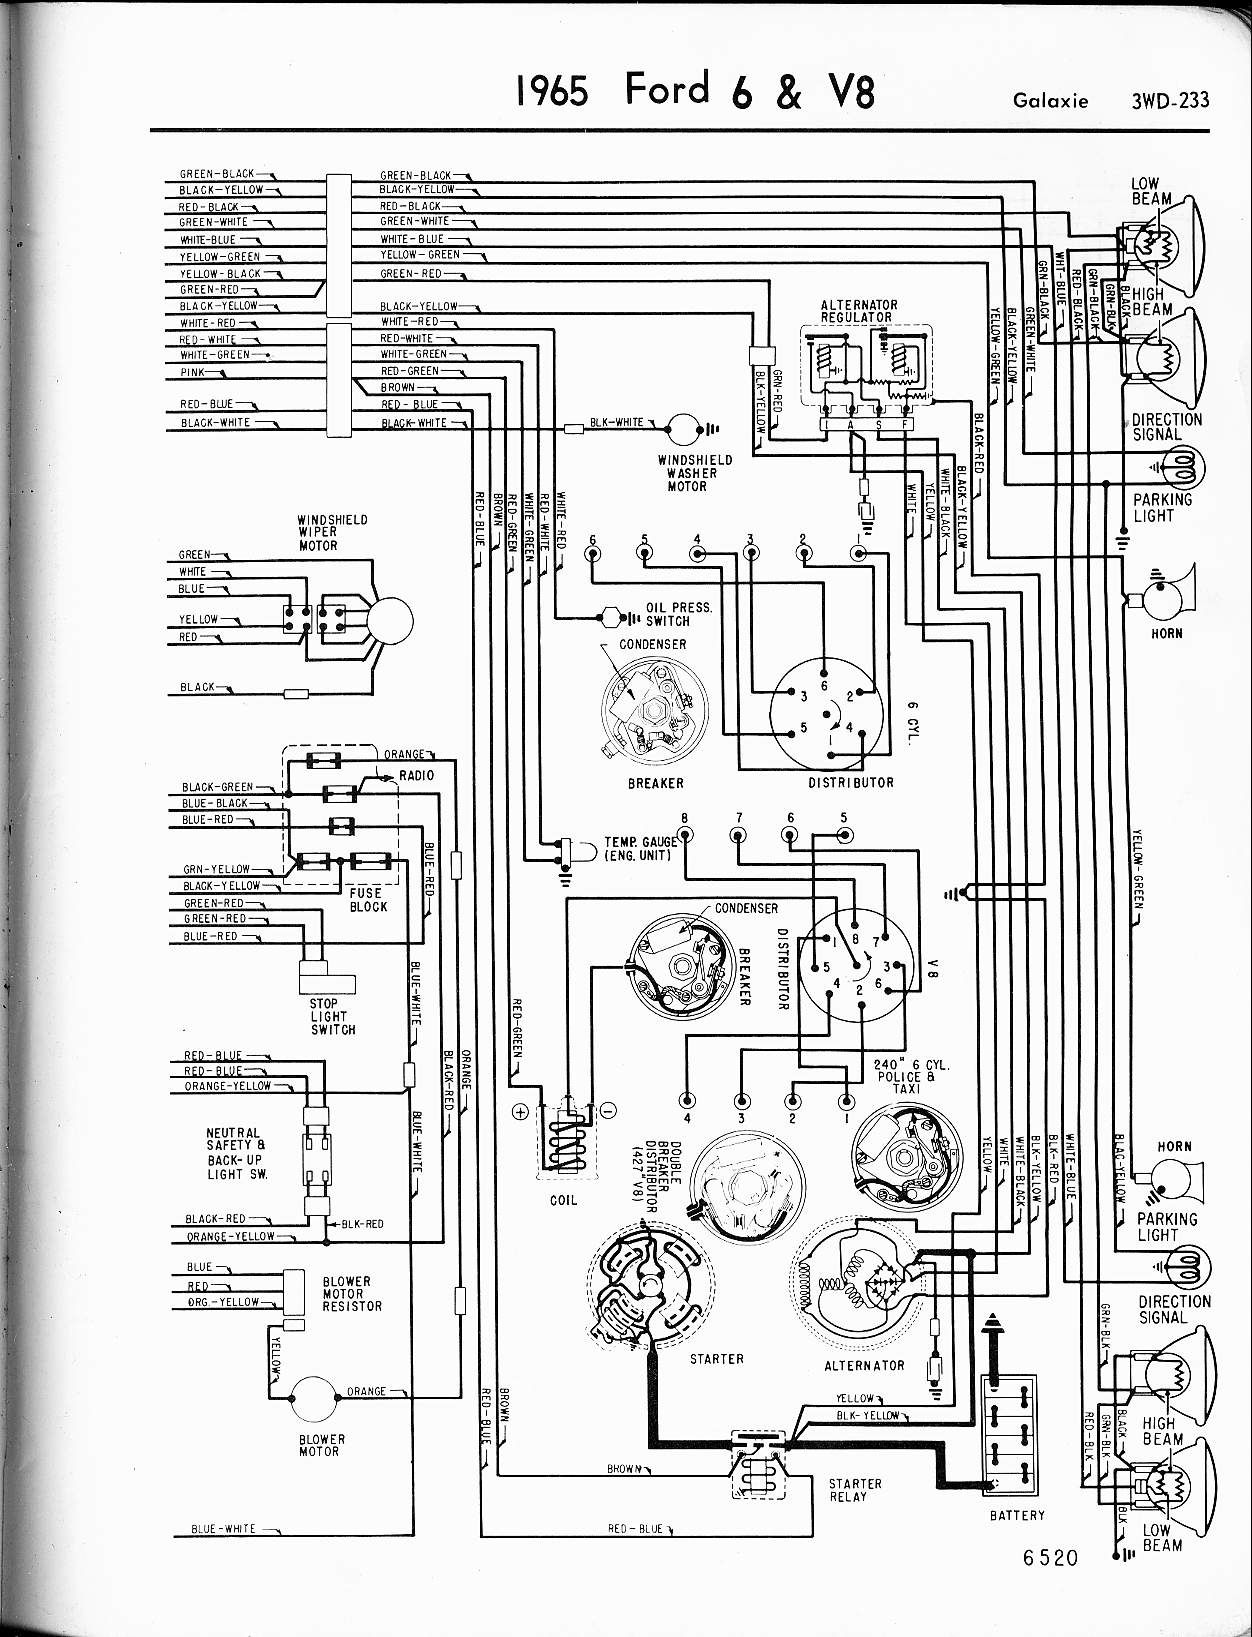 Astonishing Ford Wire Diagram Basic Electronics Wiring Diagram Wiring Cloud Domeilariaidewilluminateatxorg